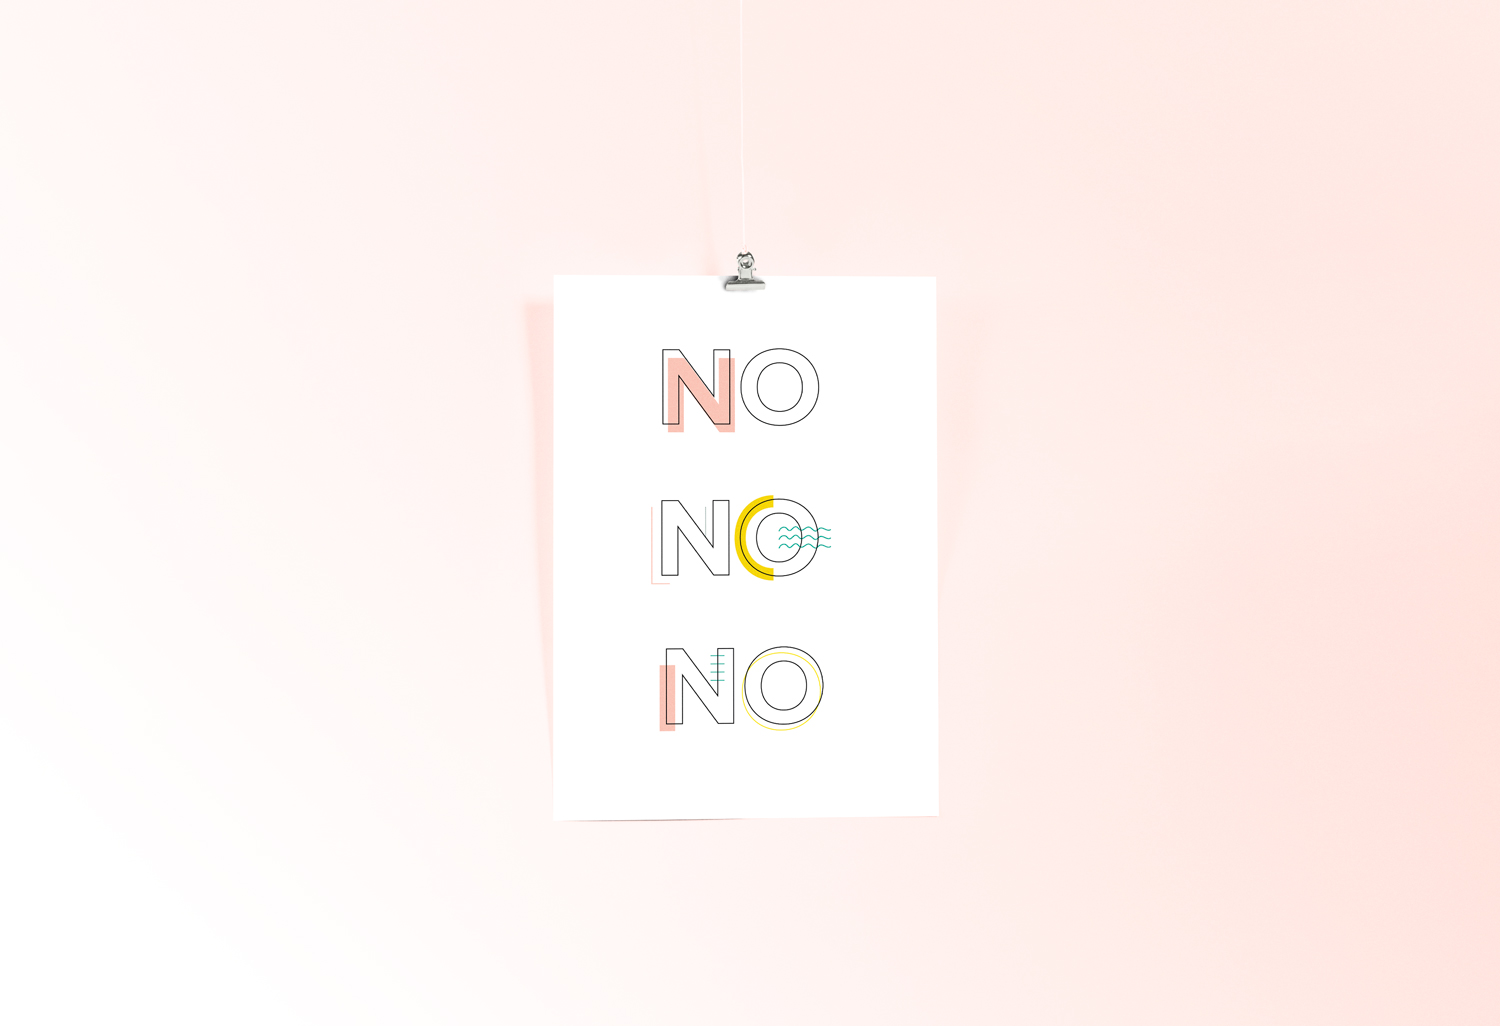 no-project-poster.jpg